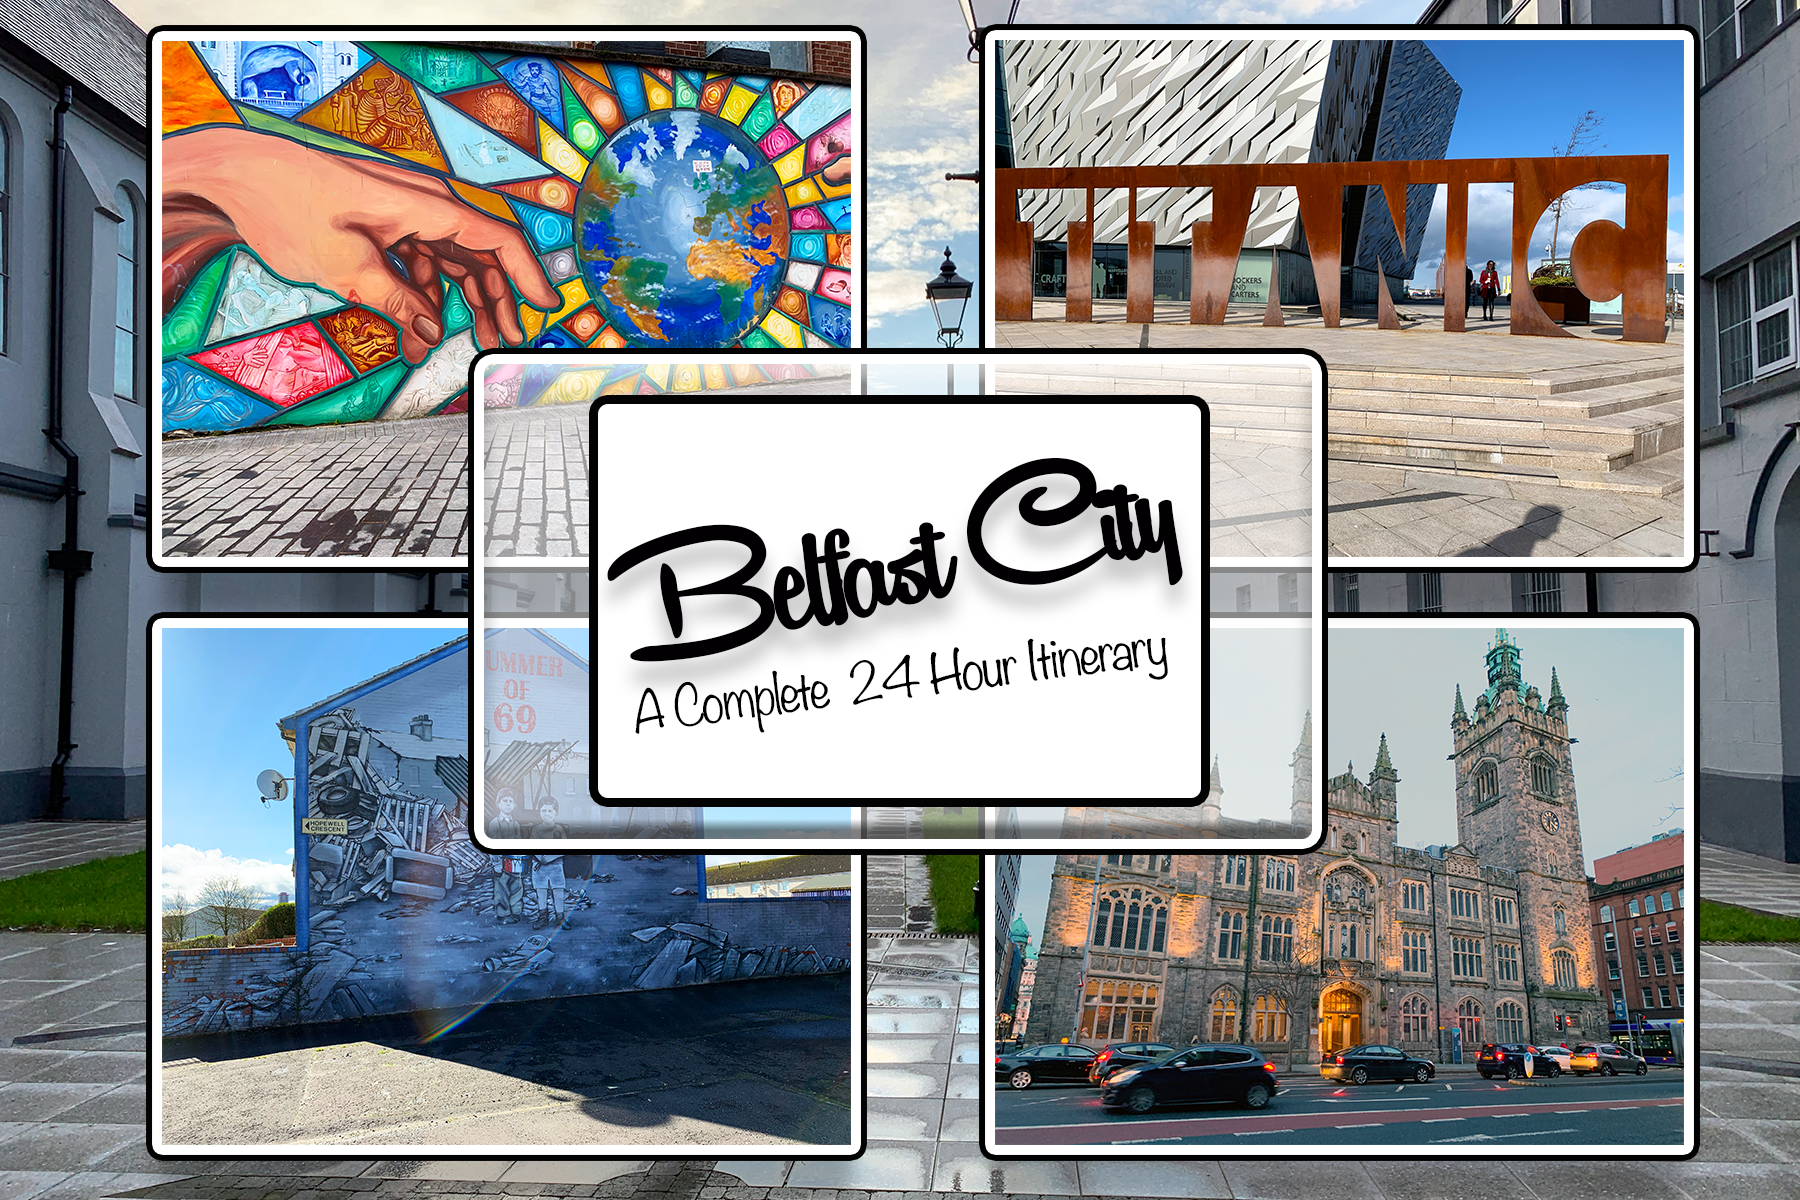 Belfast City- A Complete 24 Hour Itinerary By One Epic Road Trip Blog